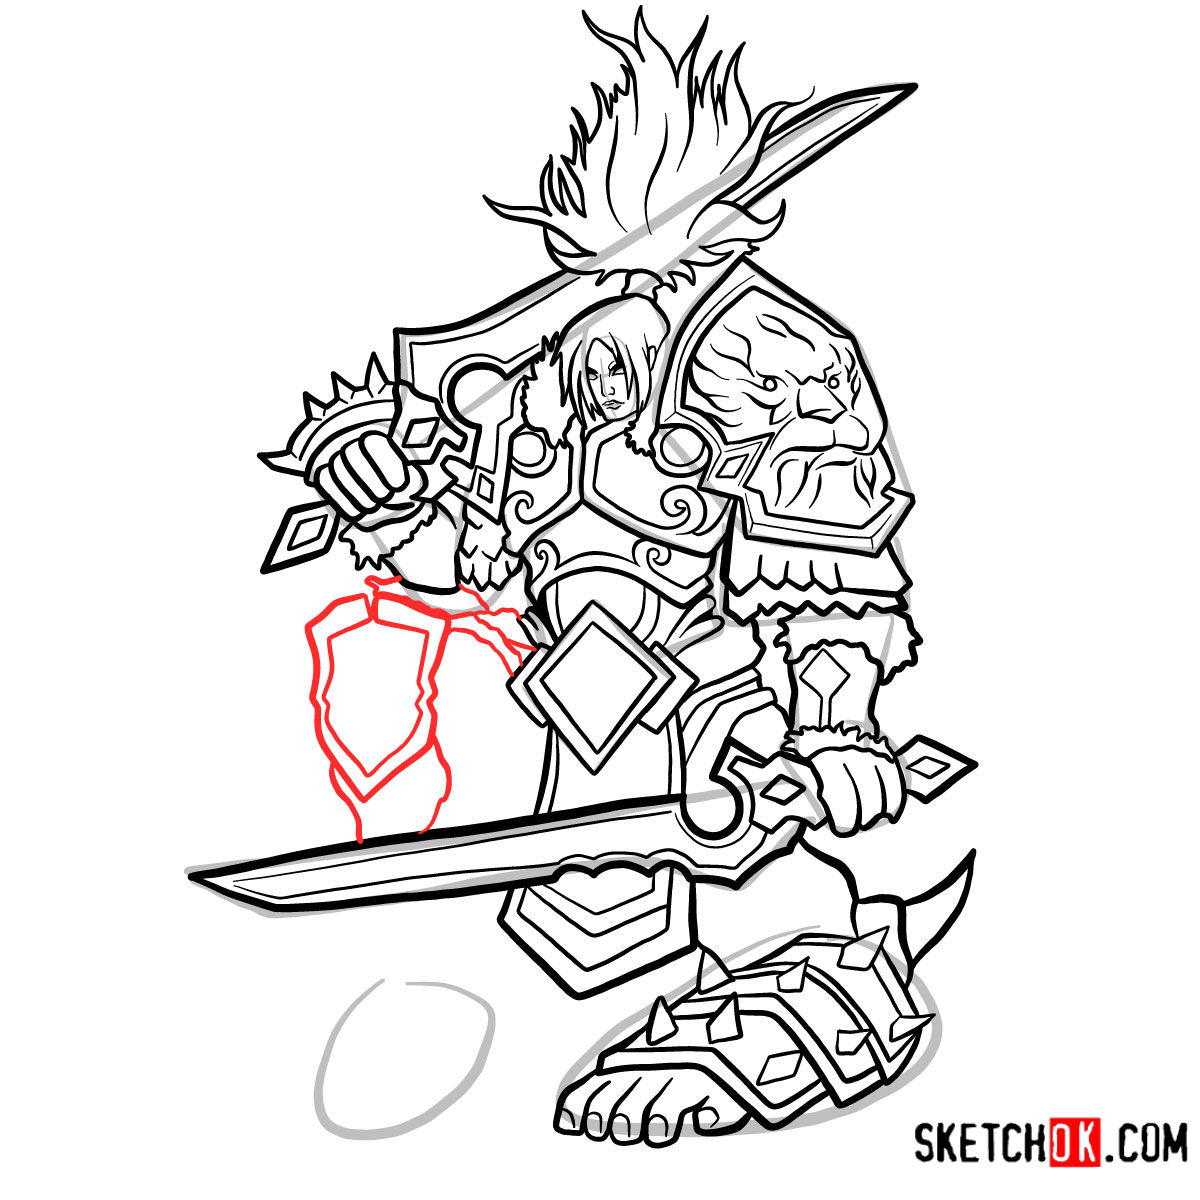 How to draw Varian Wrynn | World of Warcraft - step 14